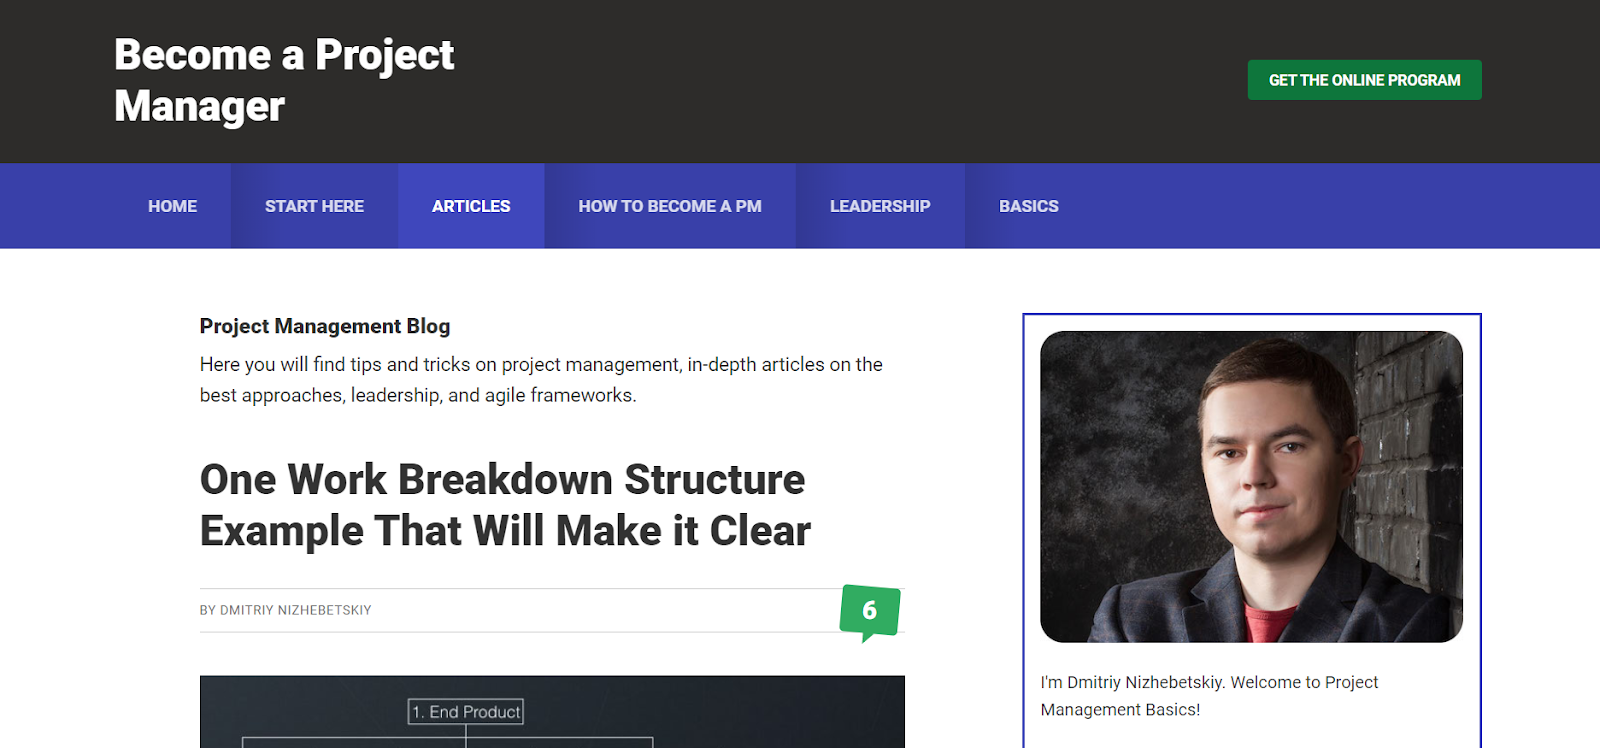 Taskworld The 15 Best Websites To Follow As A New Project Manager